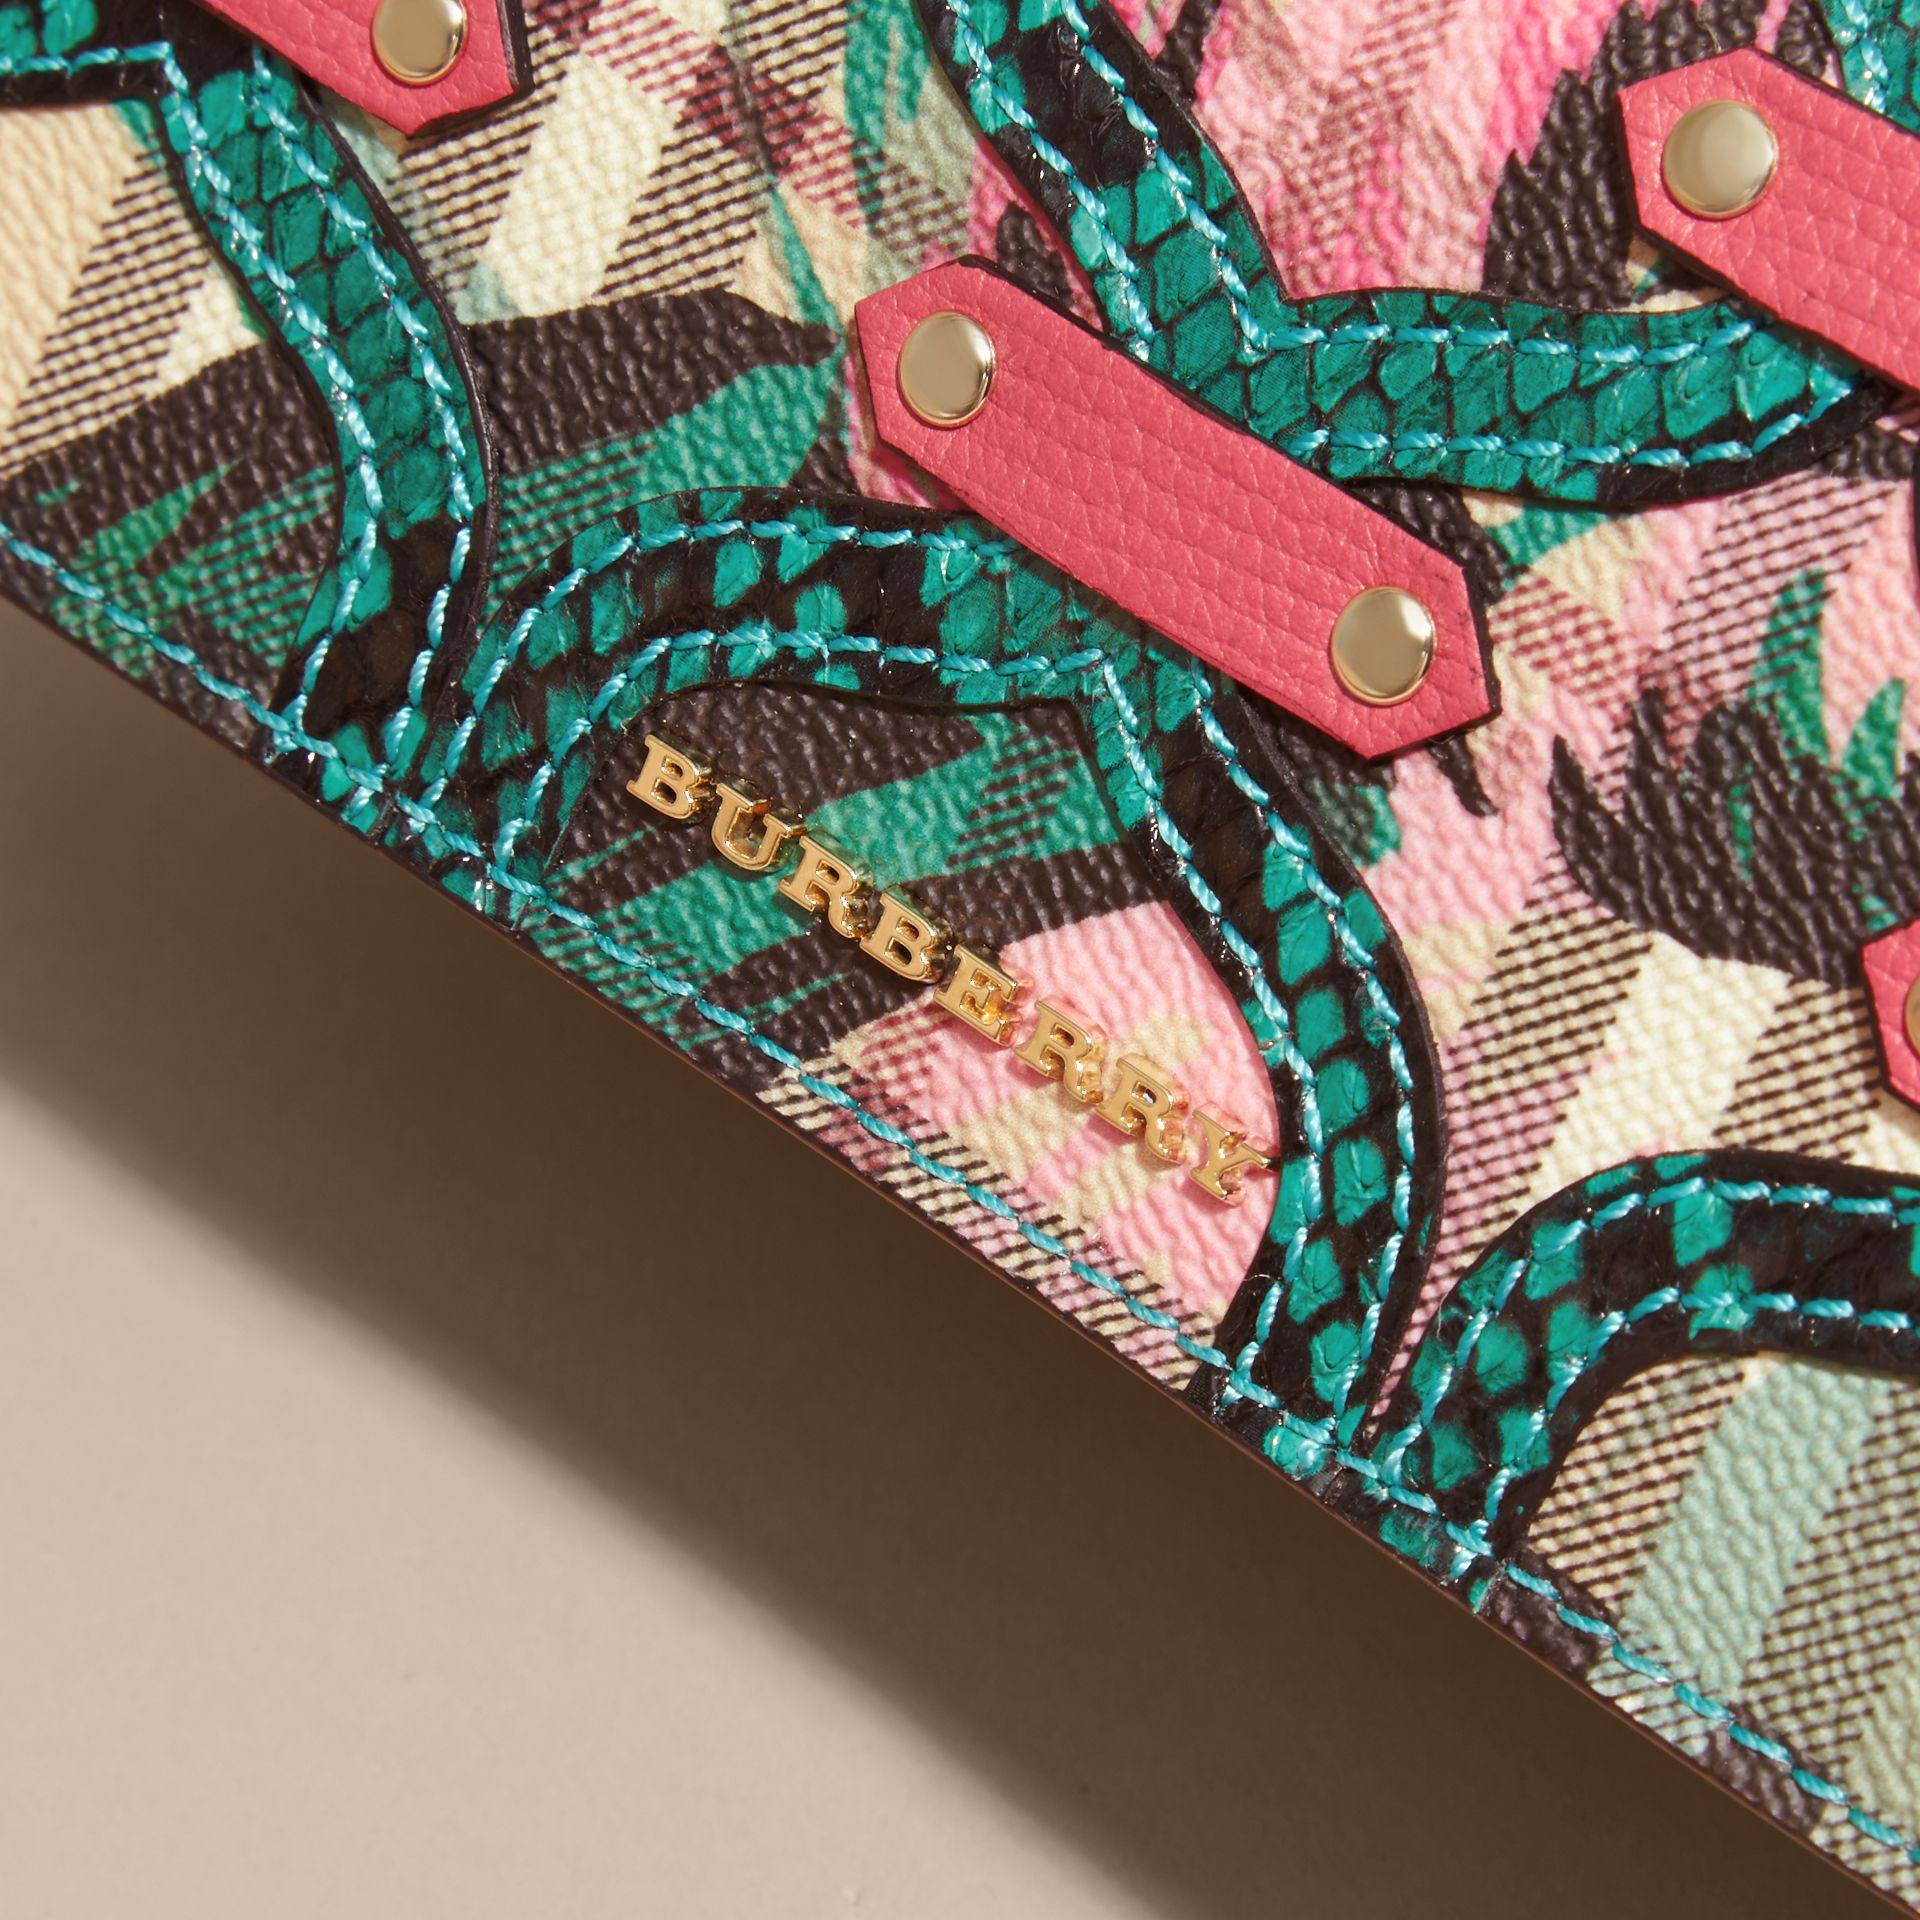 Mineral blue Snakeskin Appliqué Peony Rose Print Haymarket Check Continental Wallet Mineral Blue - gallery image 2